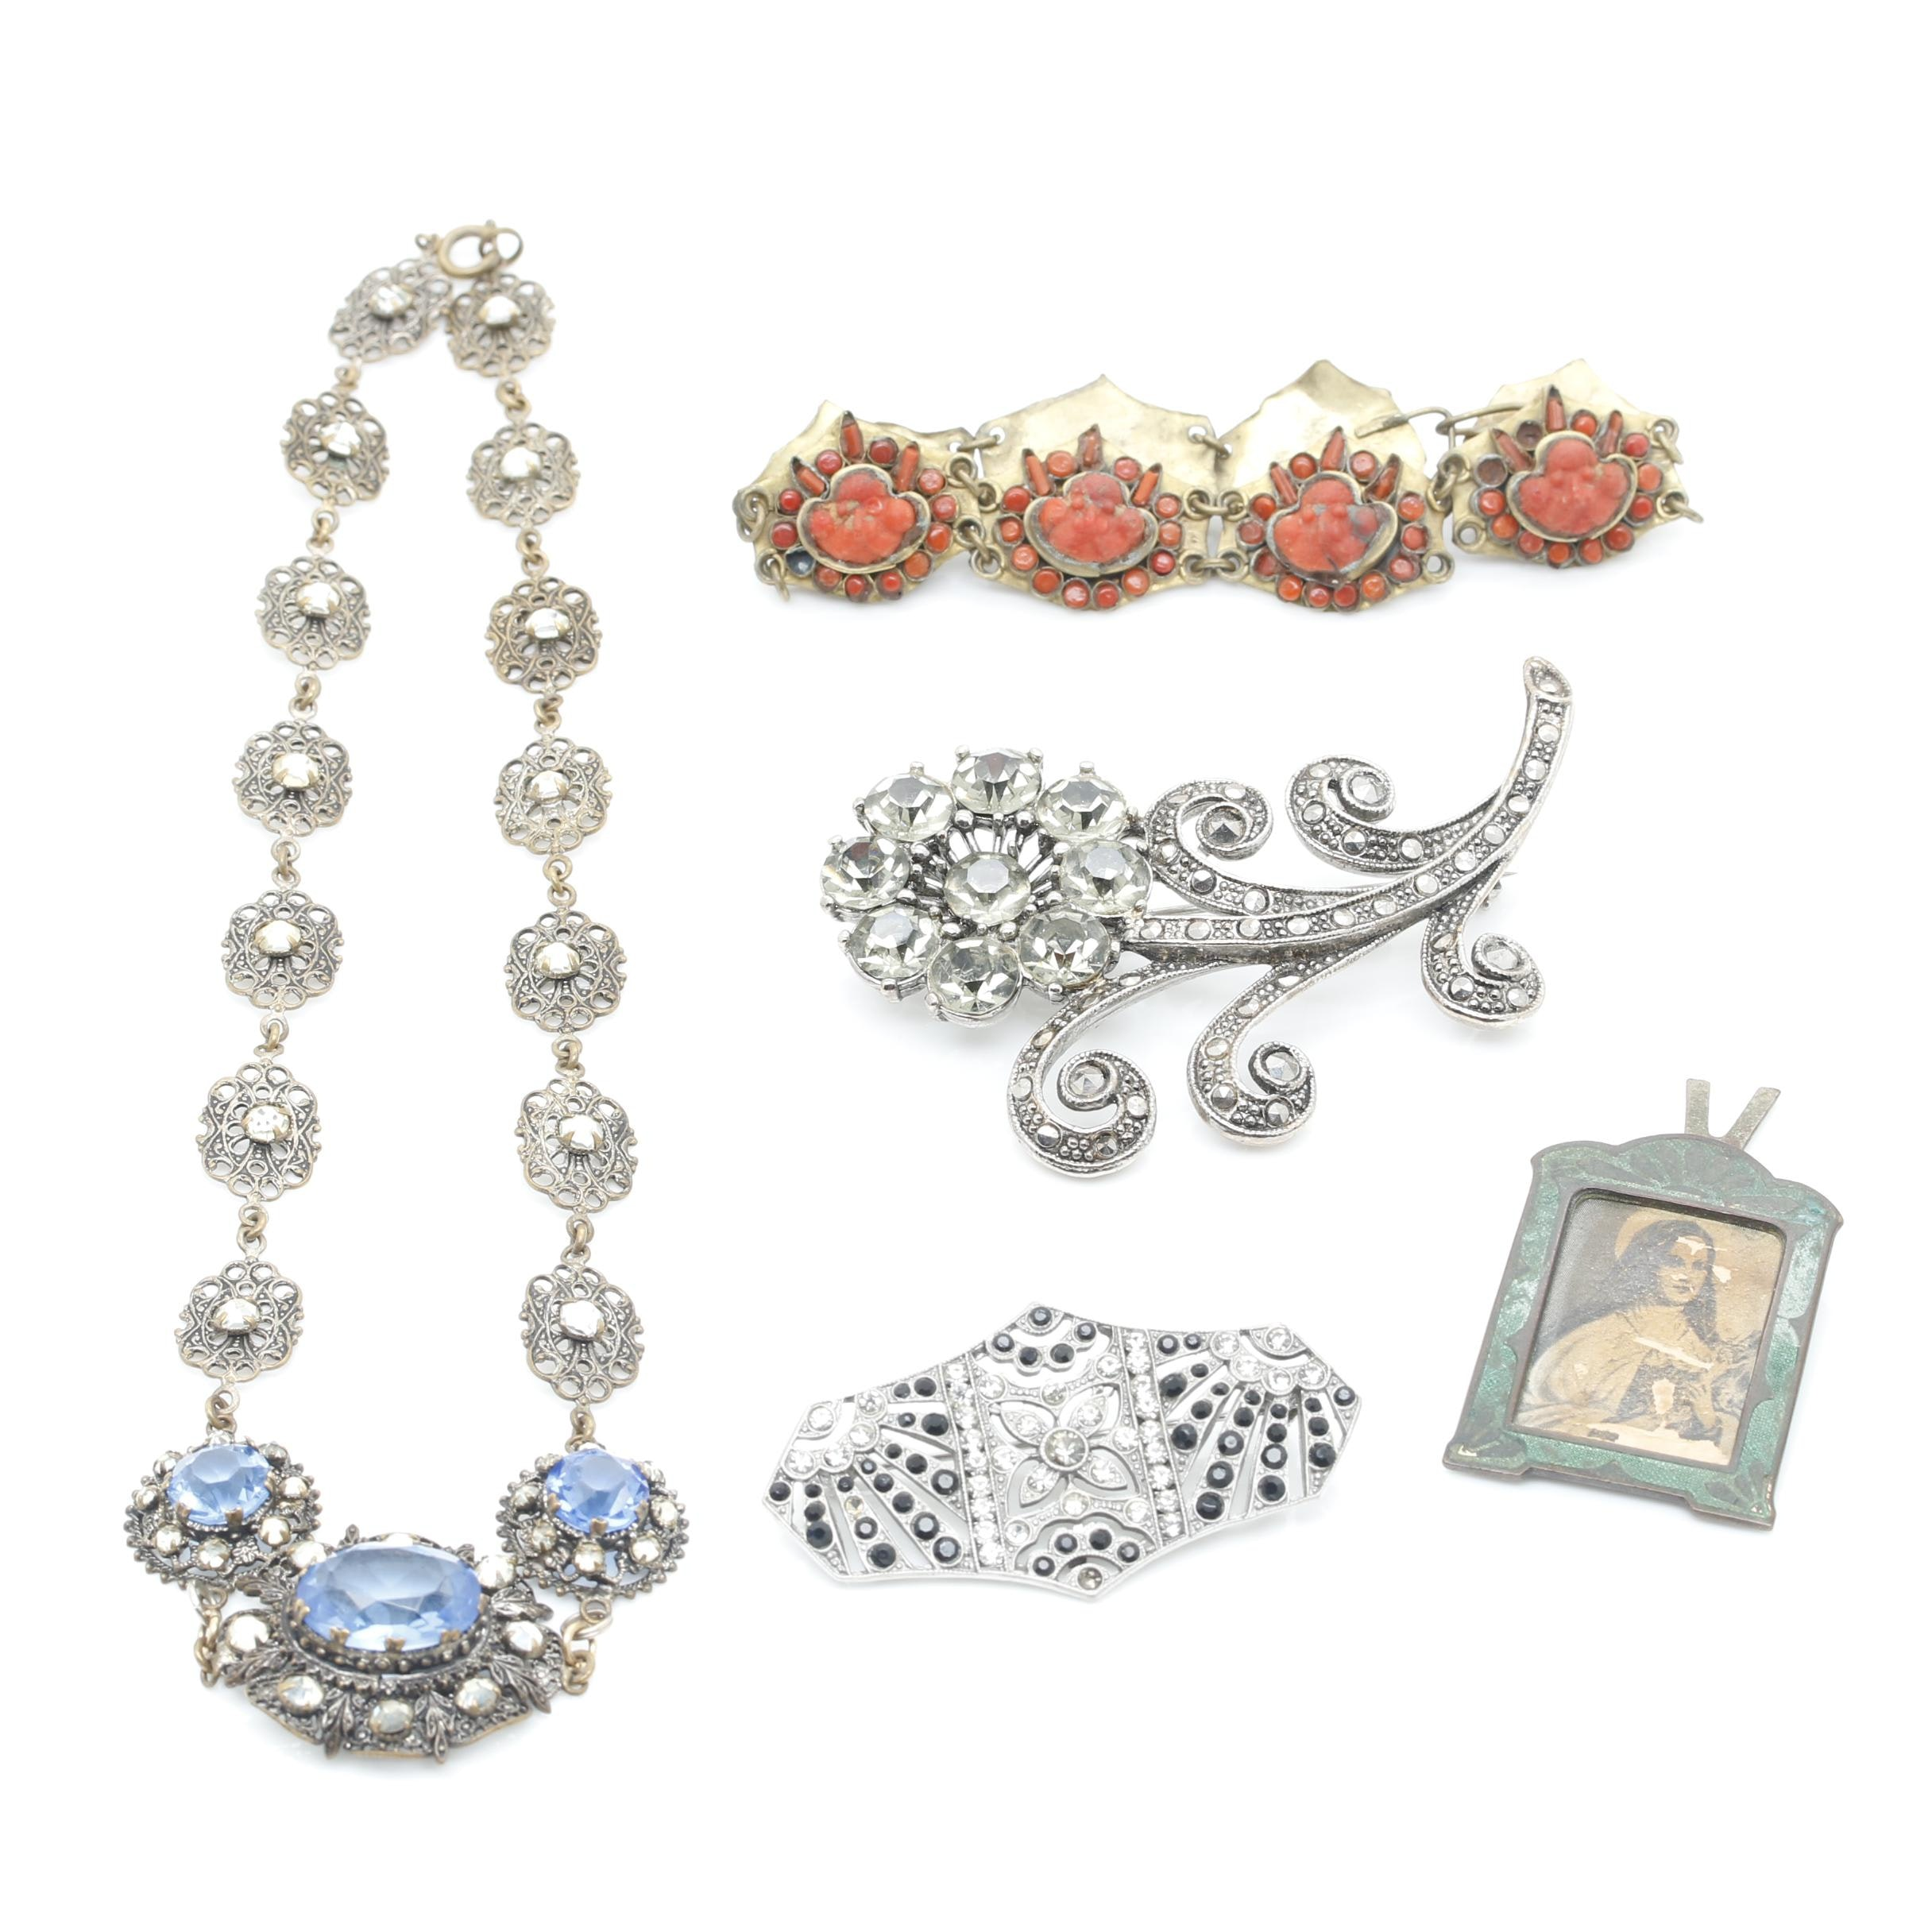 Costume Jewelry Selection Including Small Photo of a Nun